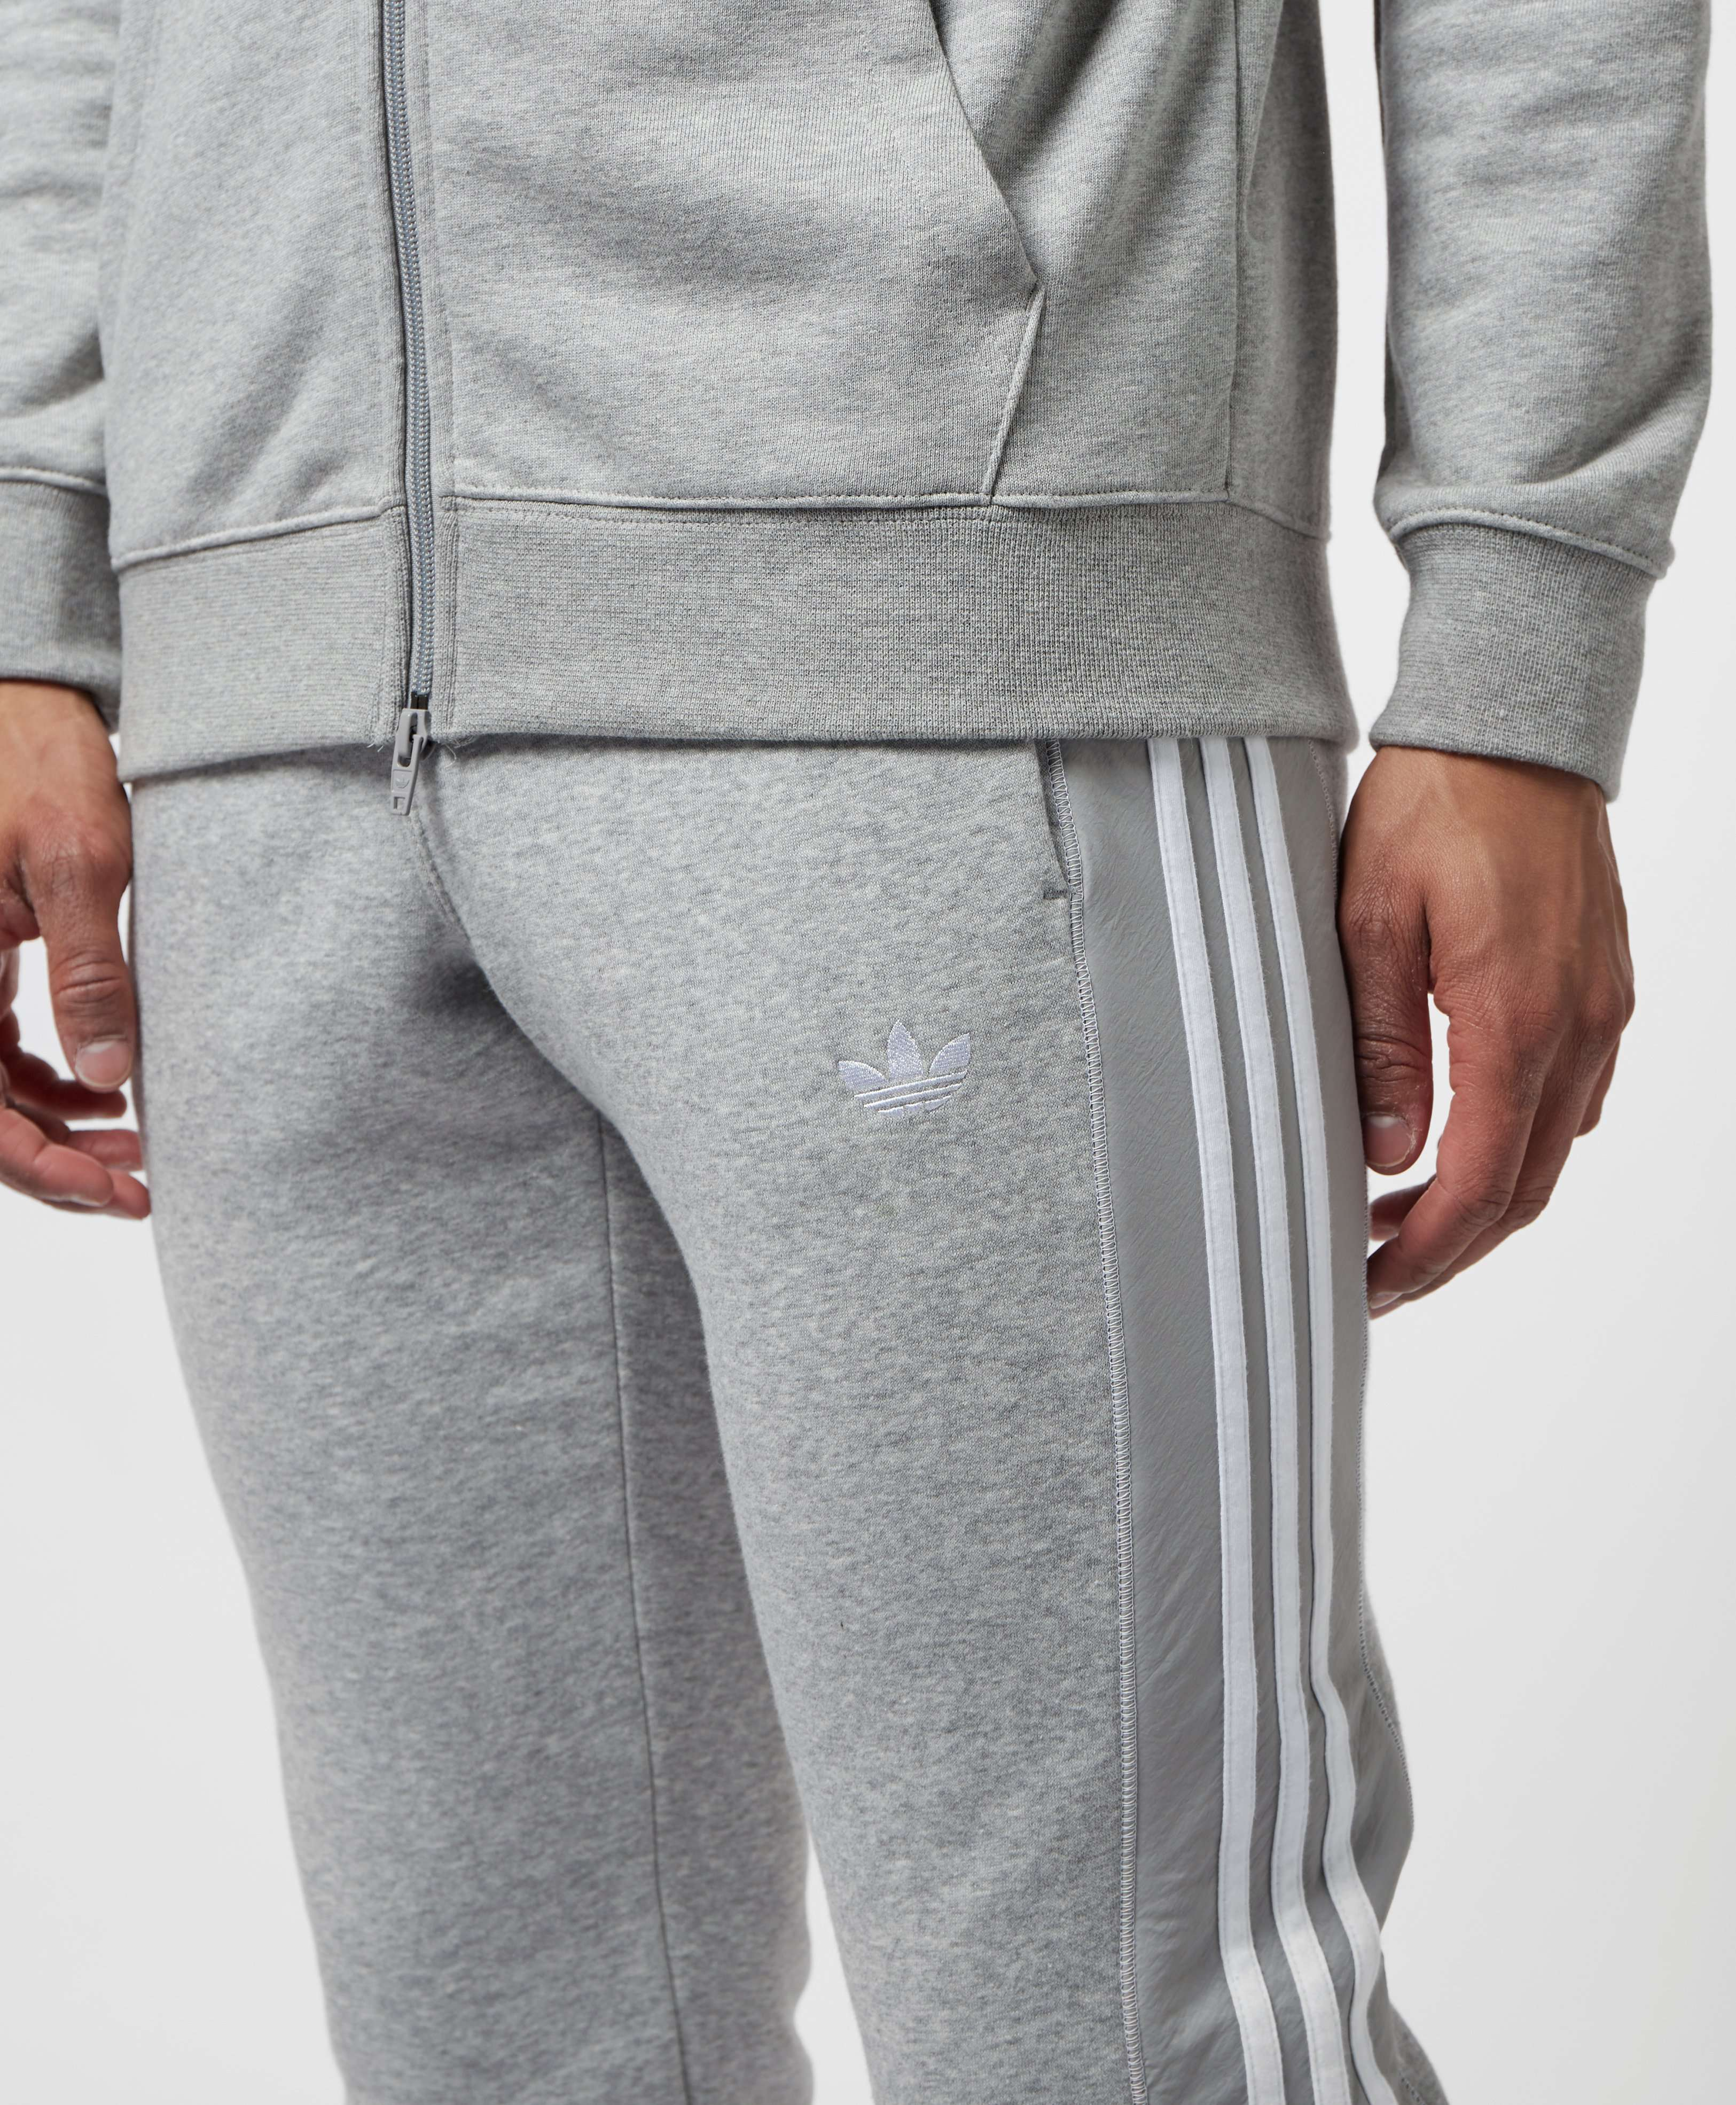 adidas Originals Spirit Cuffed Fleece Pants